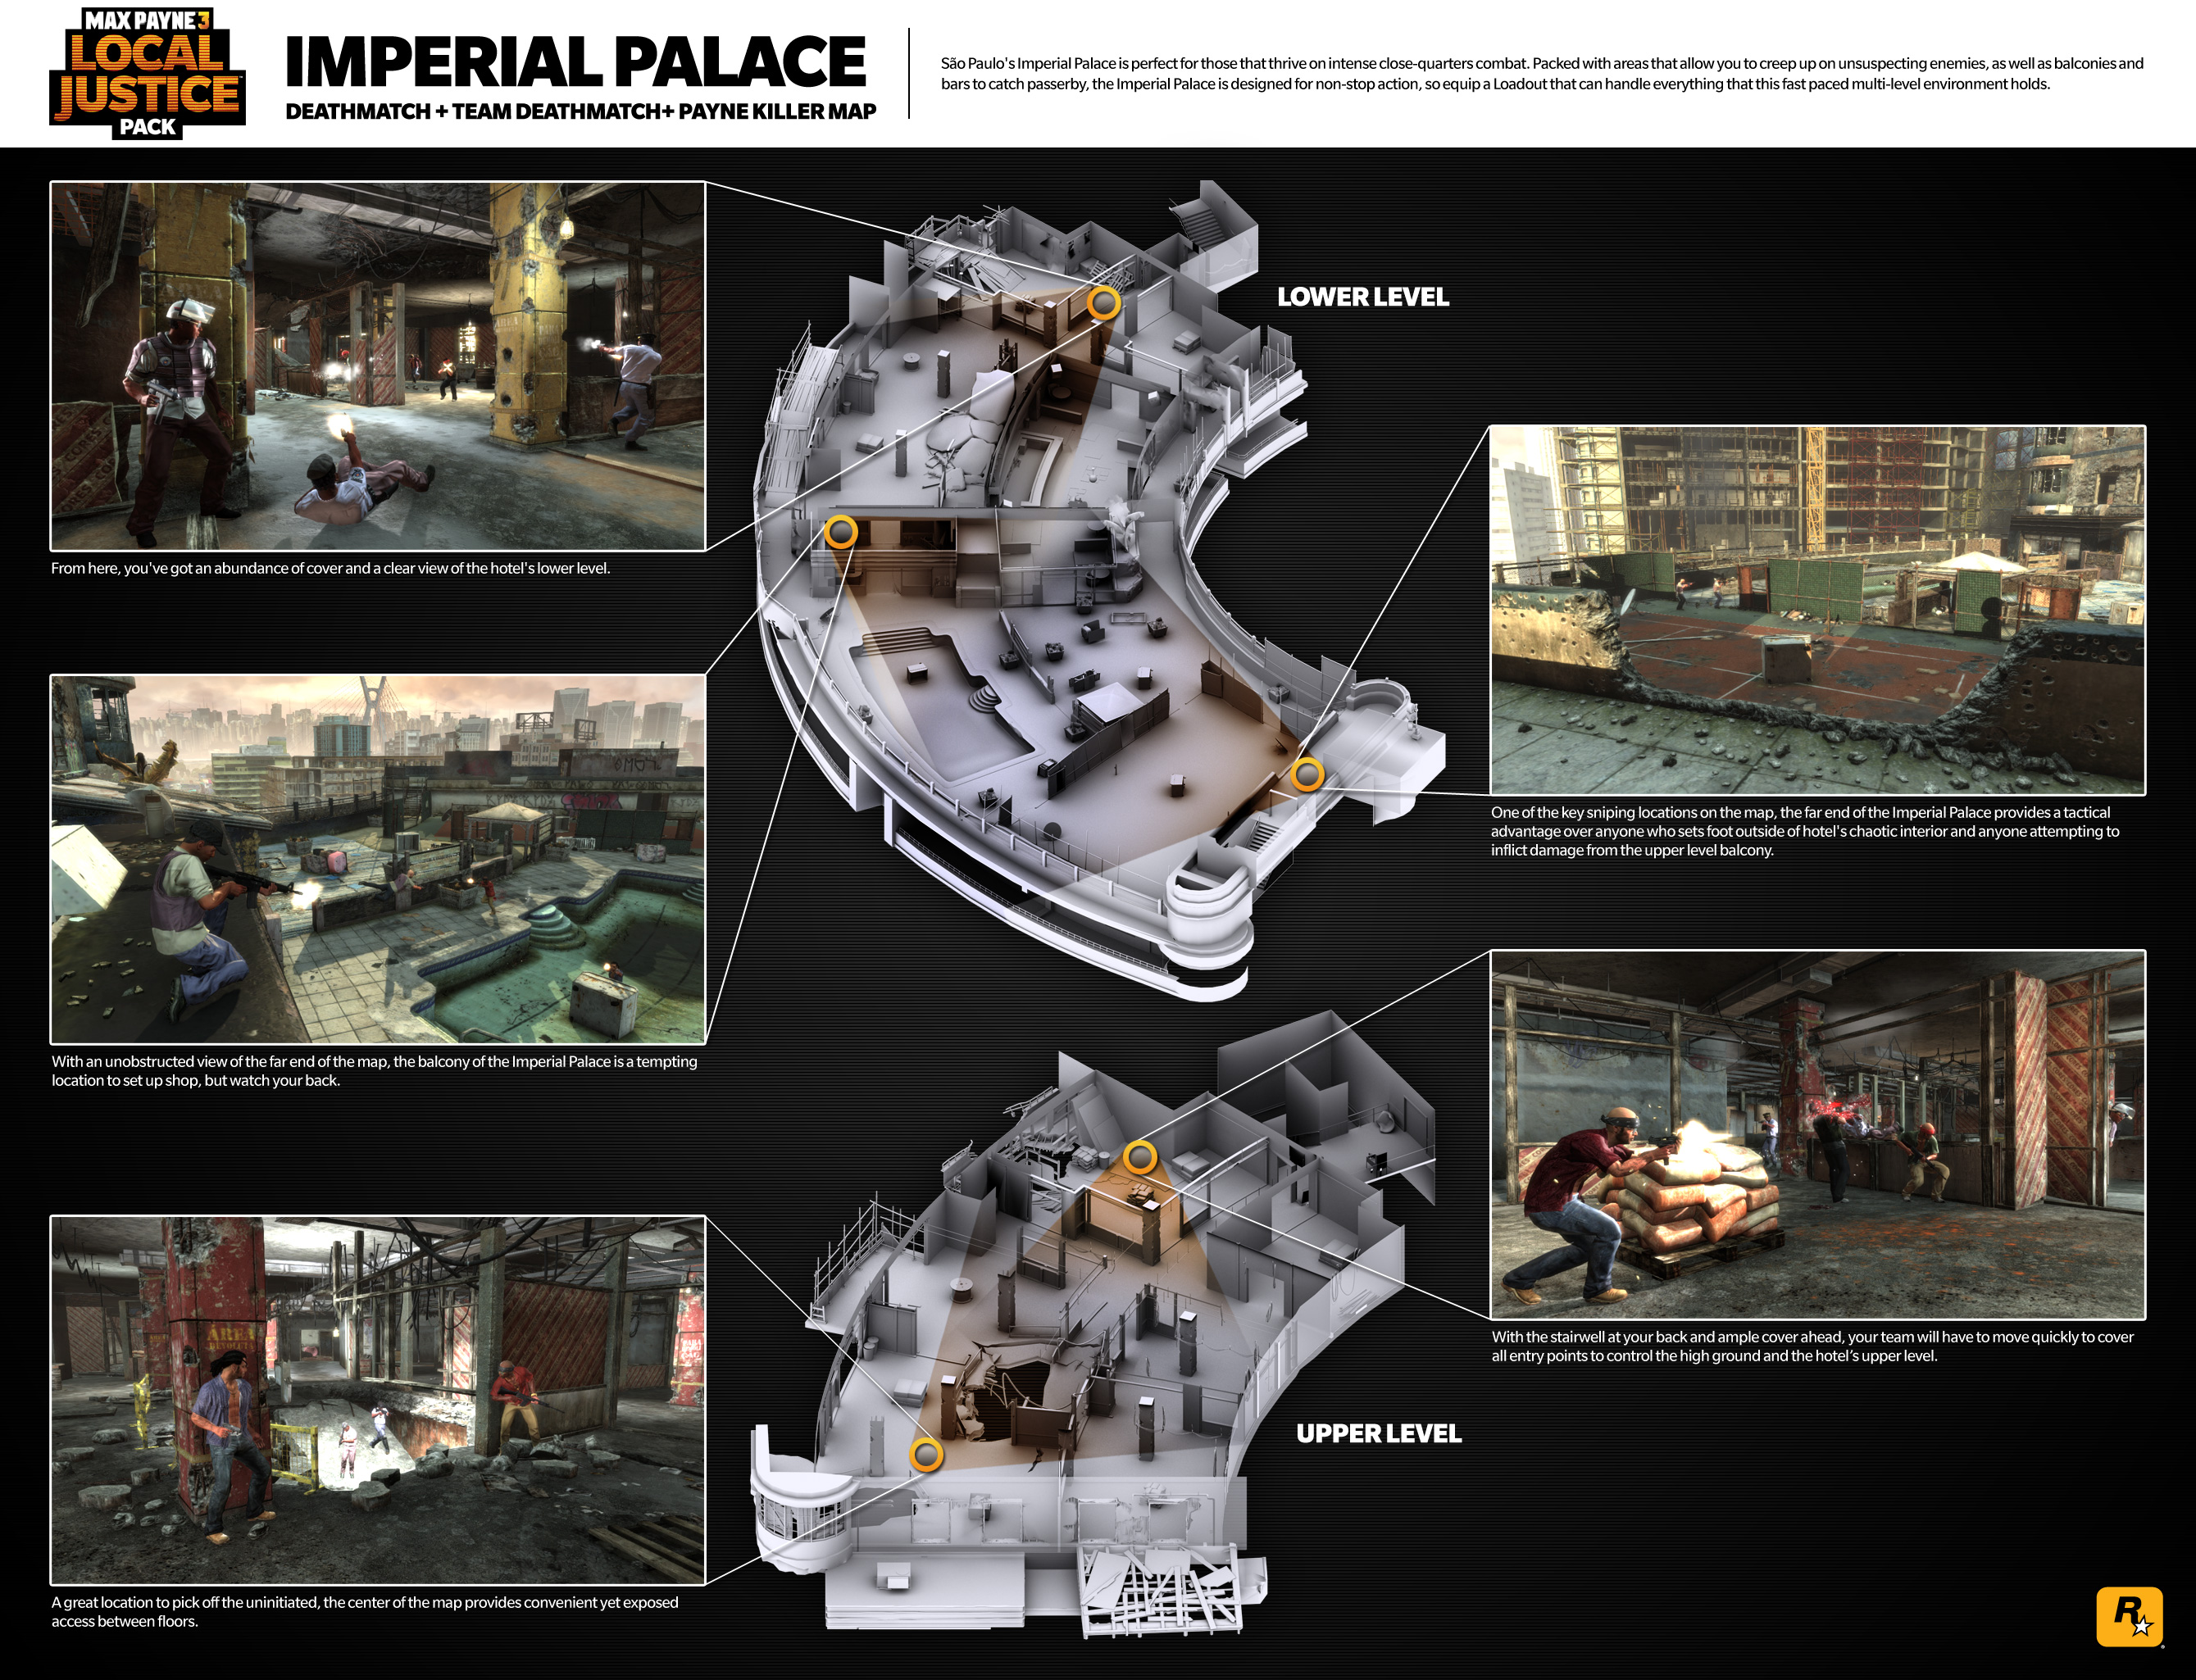 Imperial Palace Payne Killer Deathmatch Team